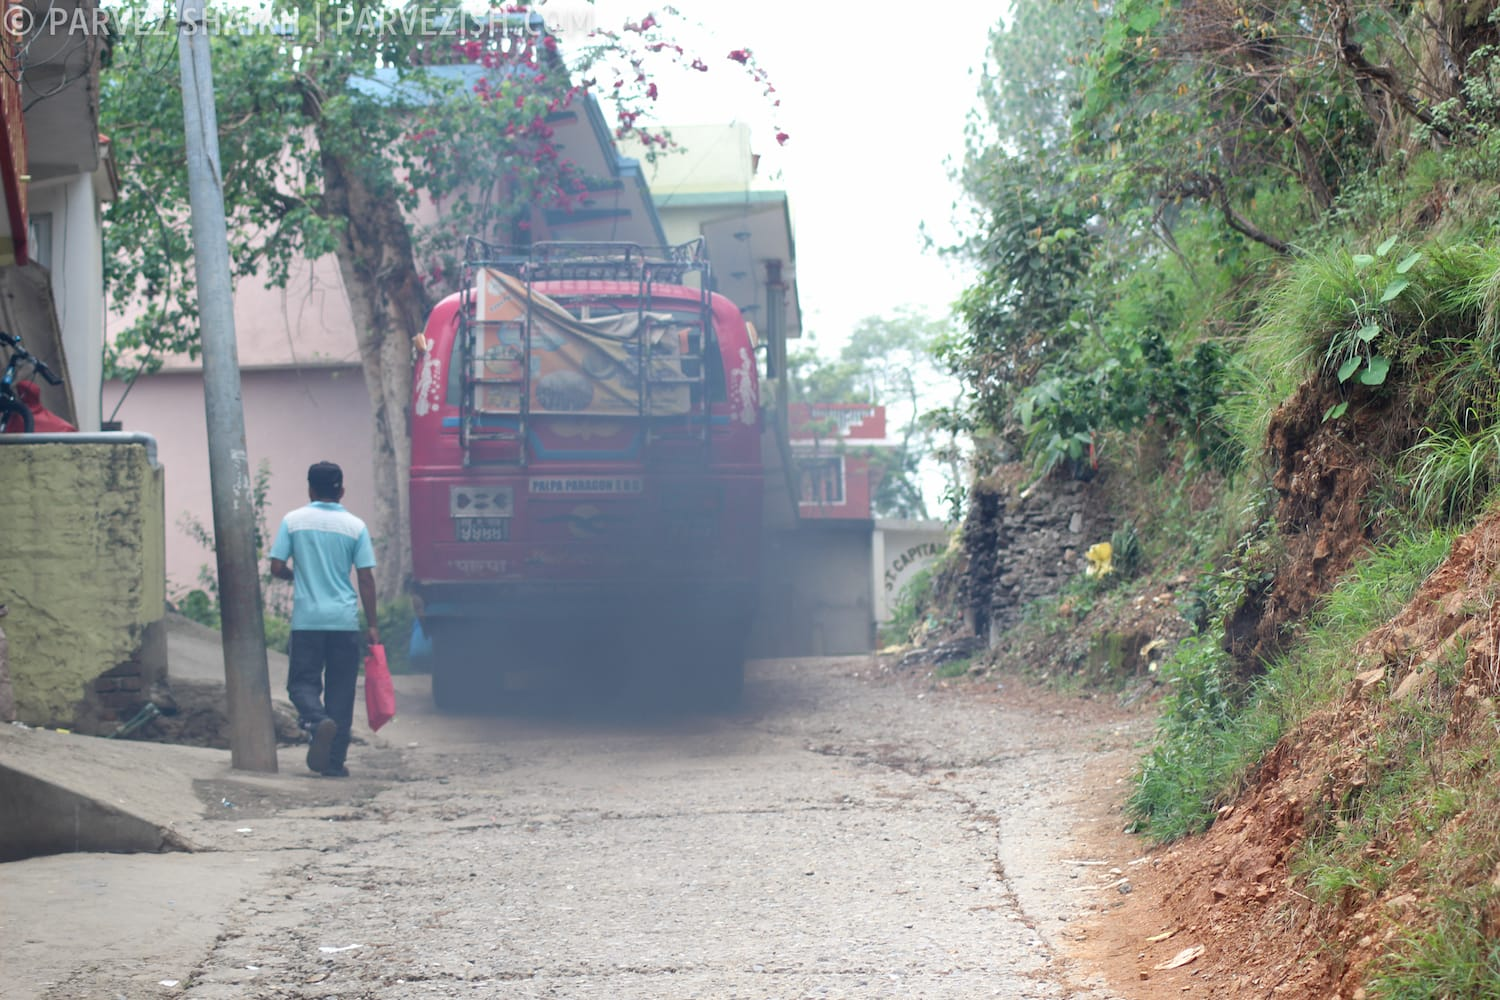 A Bus on the Roads of Tansen